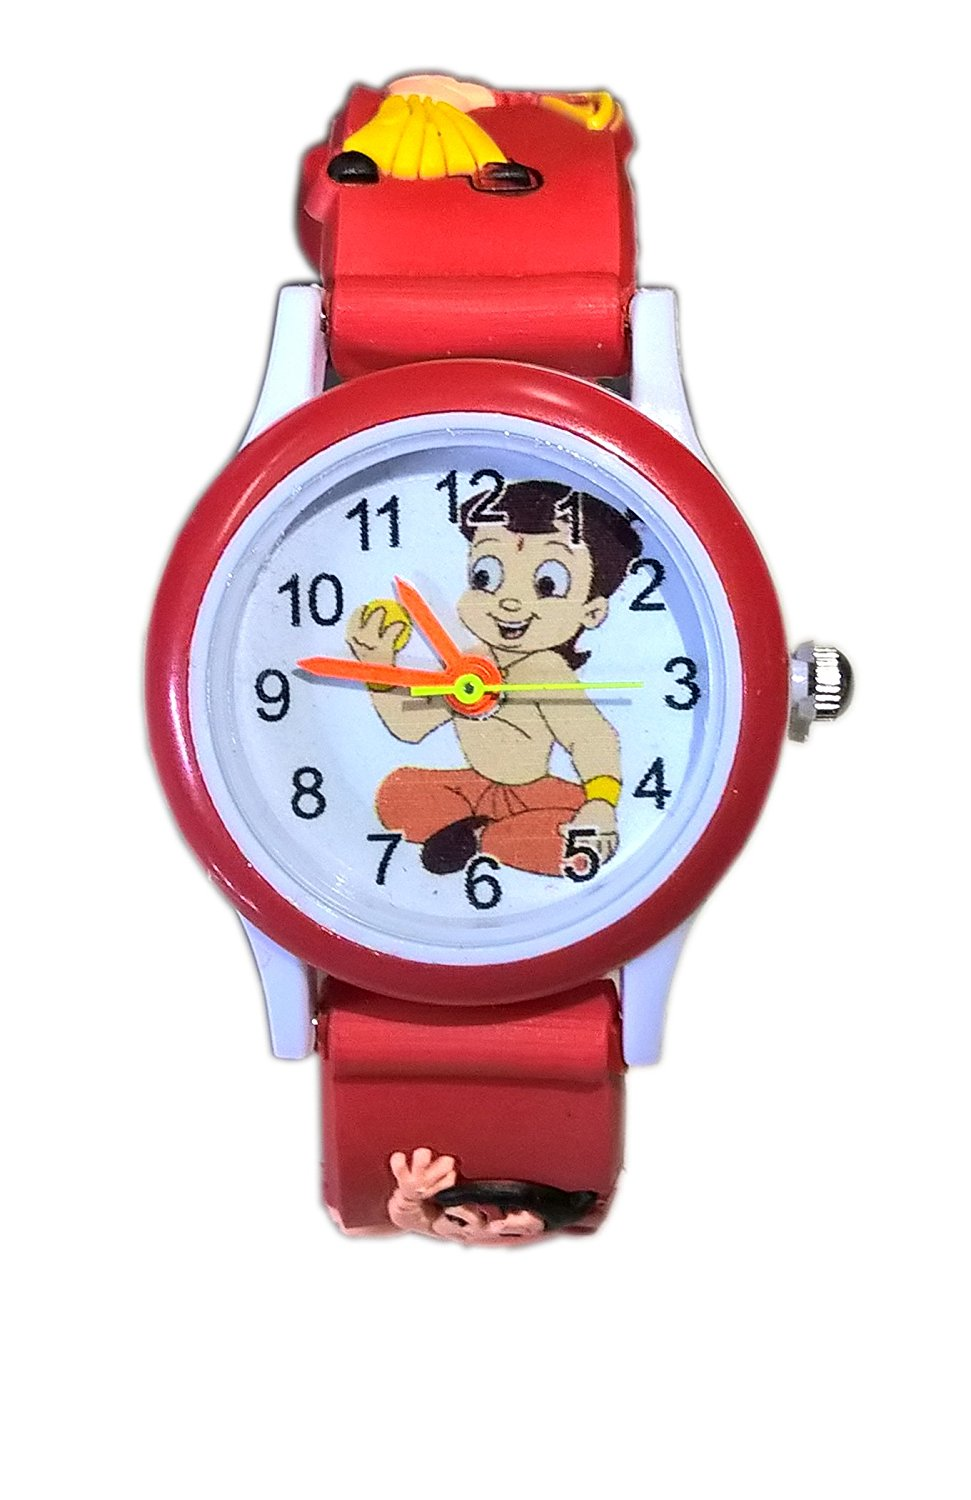 Watch clipart. Kids wrist station